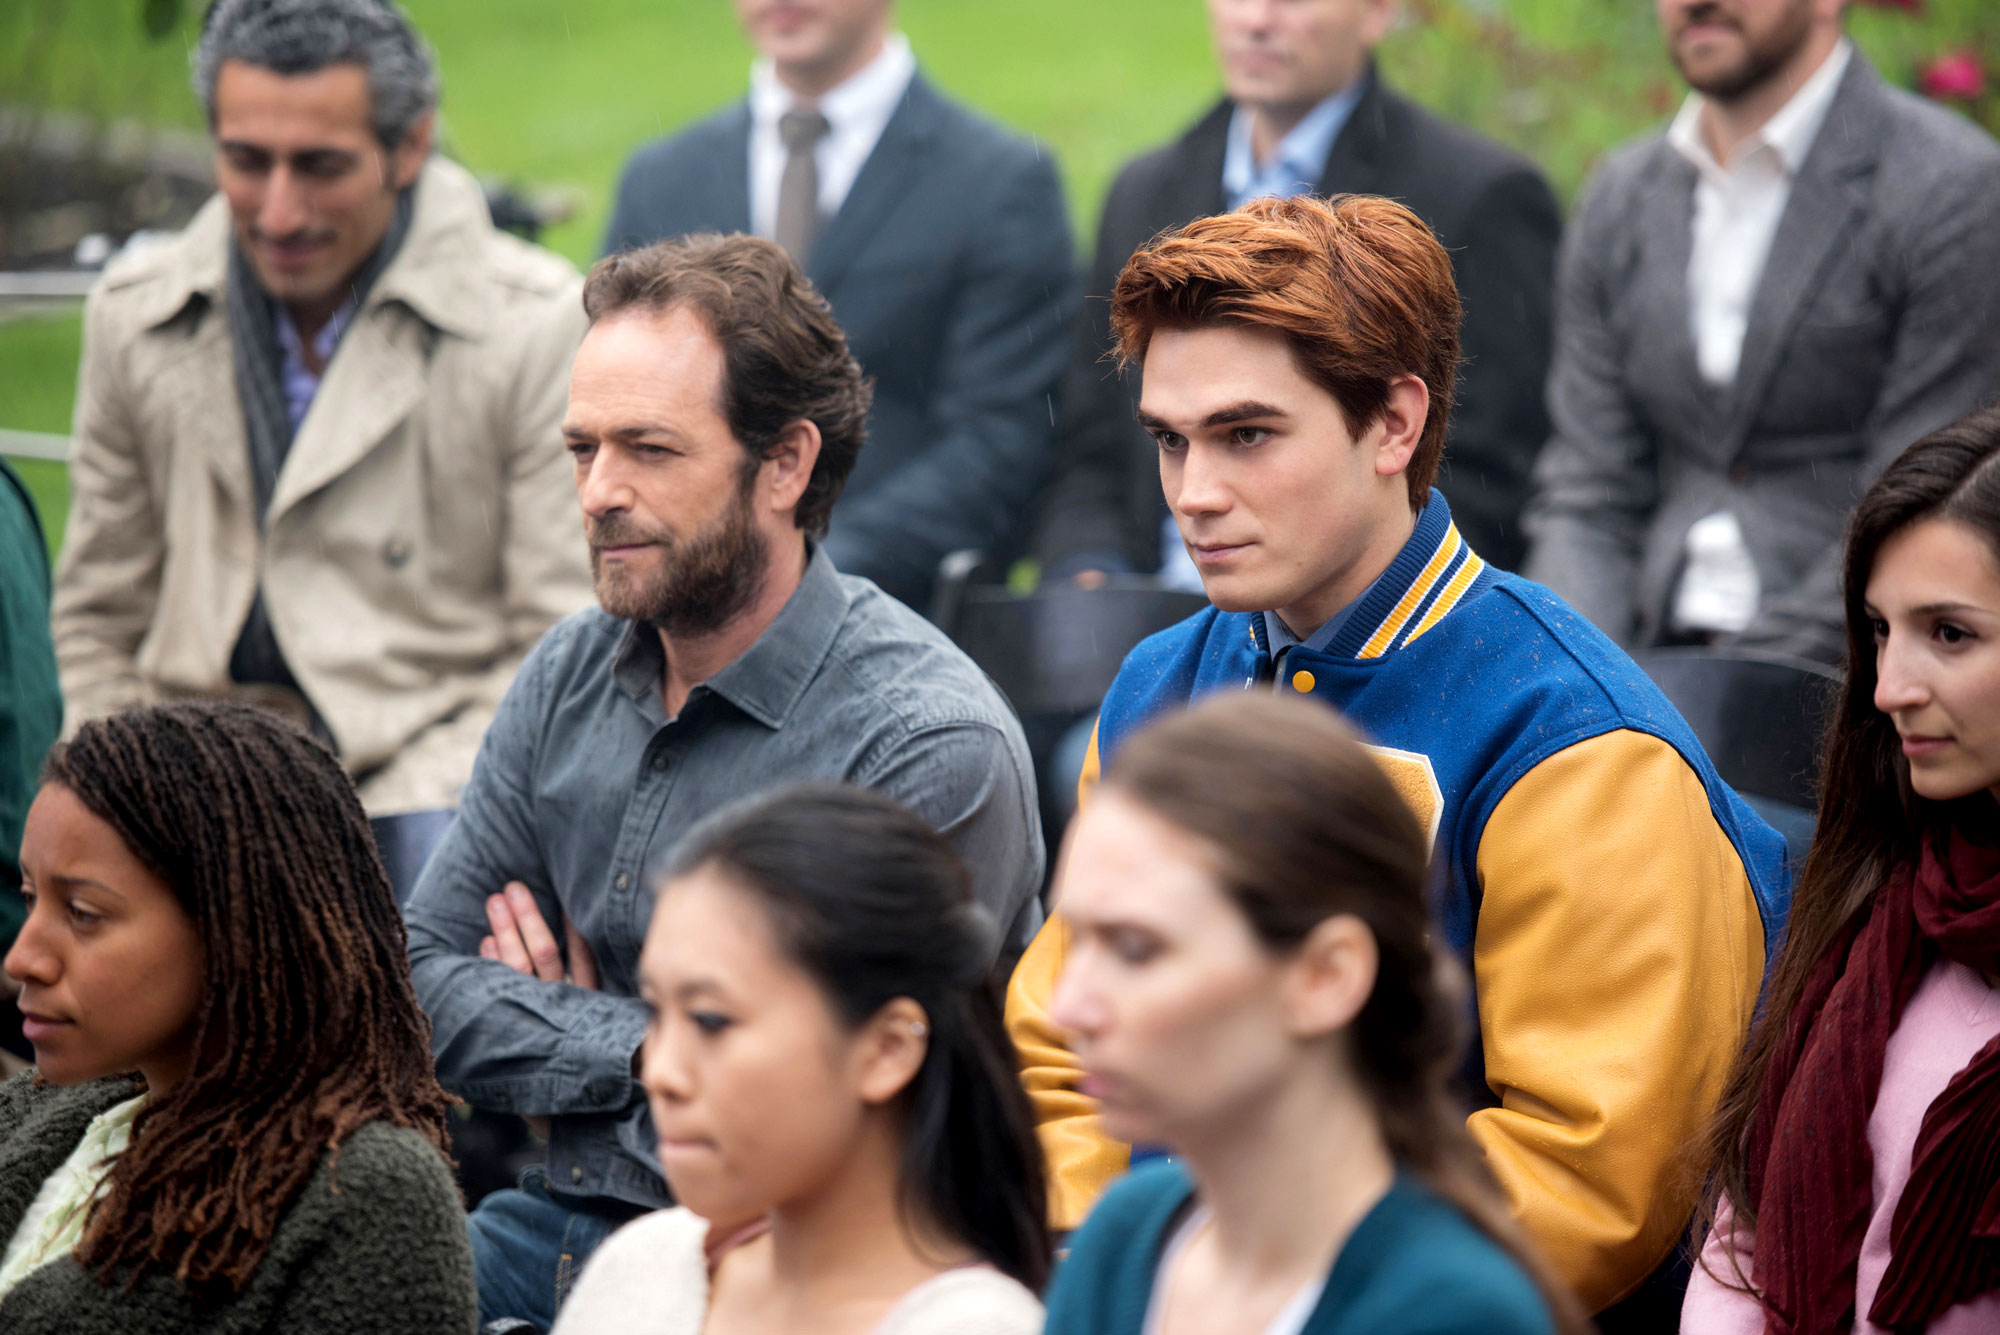 Luke Perry Through the Years - Perry returned to TV in January 2017 as Fred Andrews, the father of iconic comic book character Archie Andrews, on The CW's Riverdale .